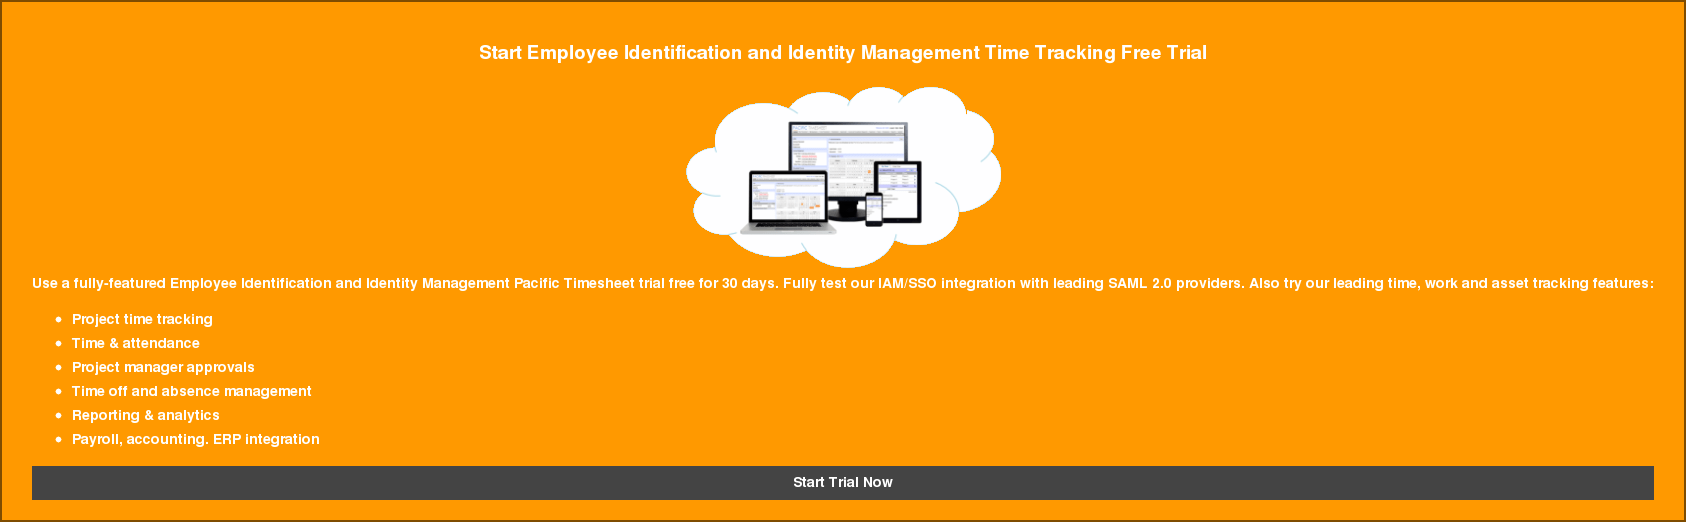 Start Employee Identification and Identity Management Time Tracking Free Trial   Use a fully-featured Employee Identification and Identity Management Pacific  Timesheet trial free for 30 days. Fully test our IAM/SSO integration with  leading SAML 2.0 providers. Also try our leading time, work and asset tracking  features:   * Project time tracking   * Time & attendance   * Project manager approvals   * Time off and absence management   * Reporting & analytics   * Payroll, accounting. ERP integration Start Trial Now